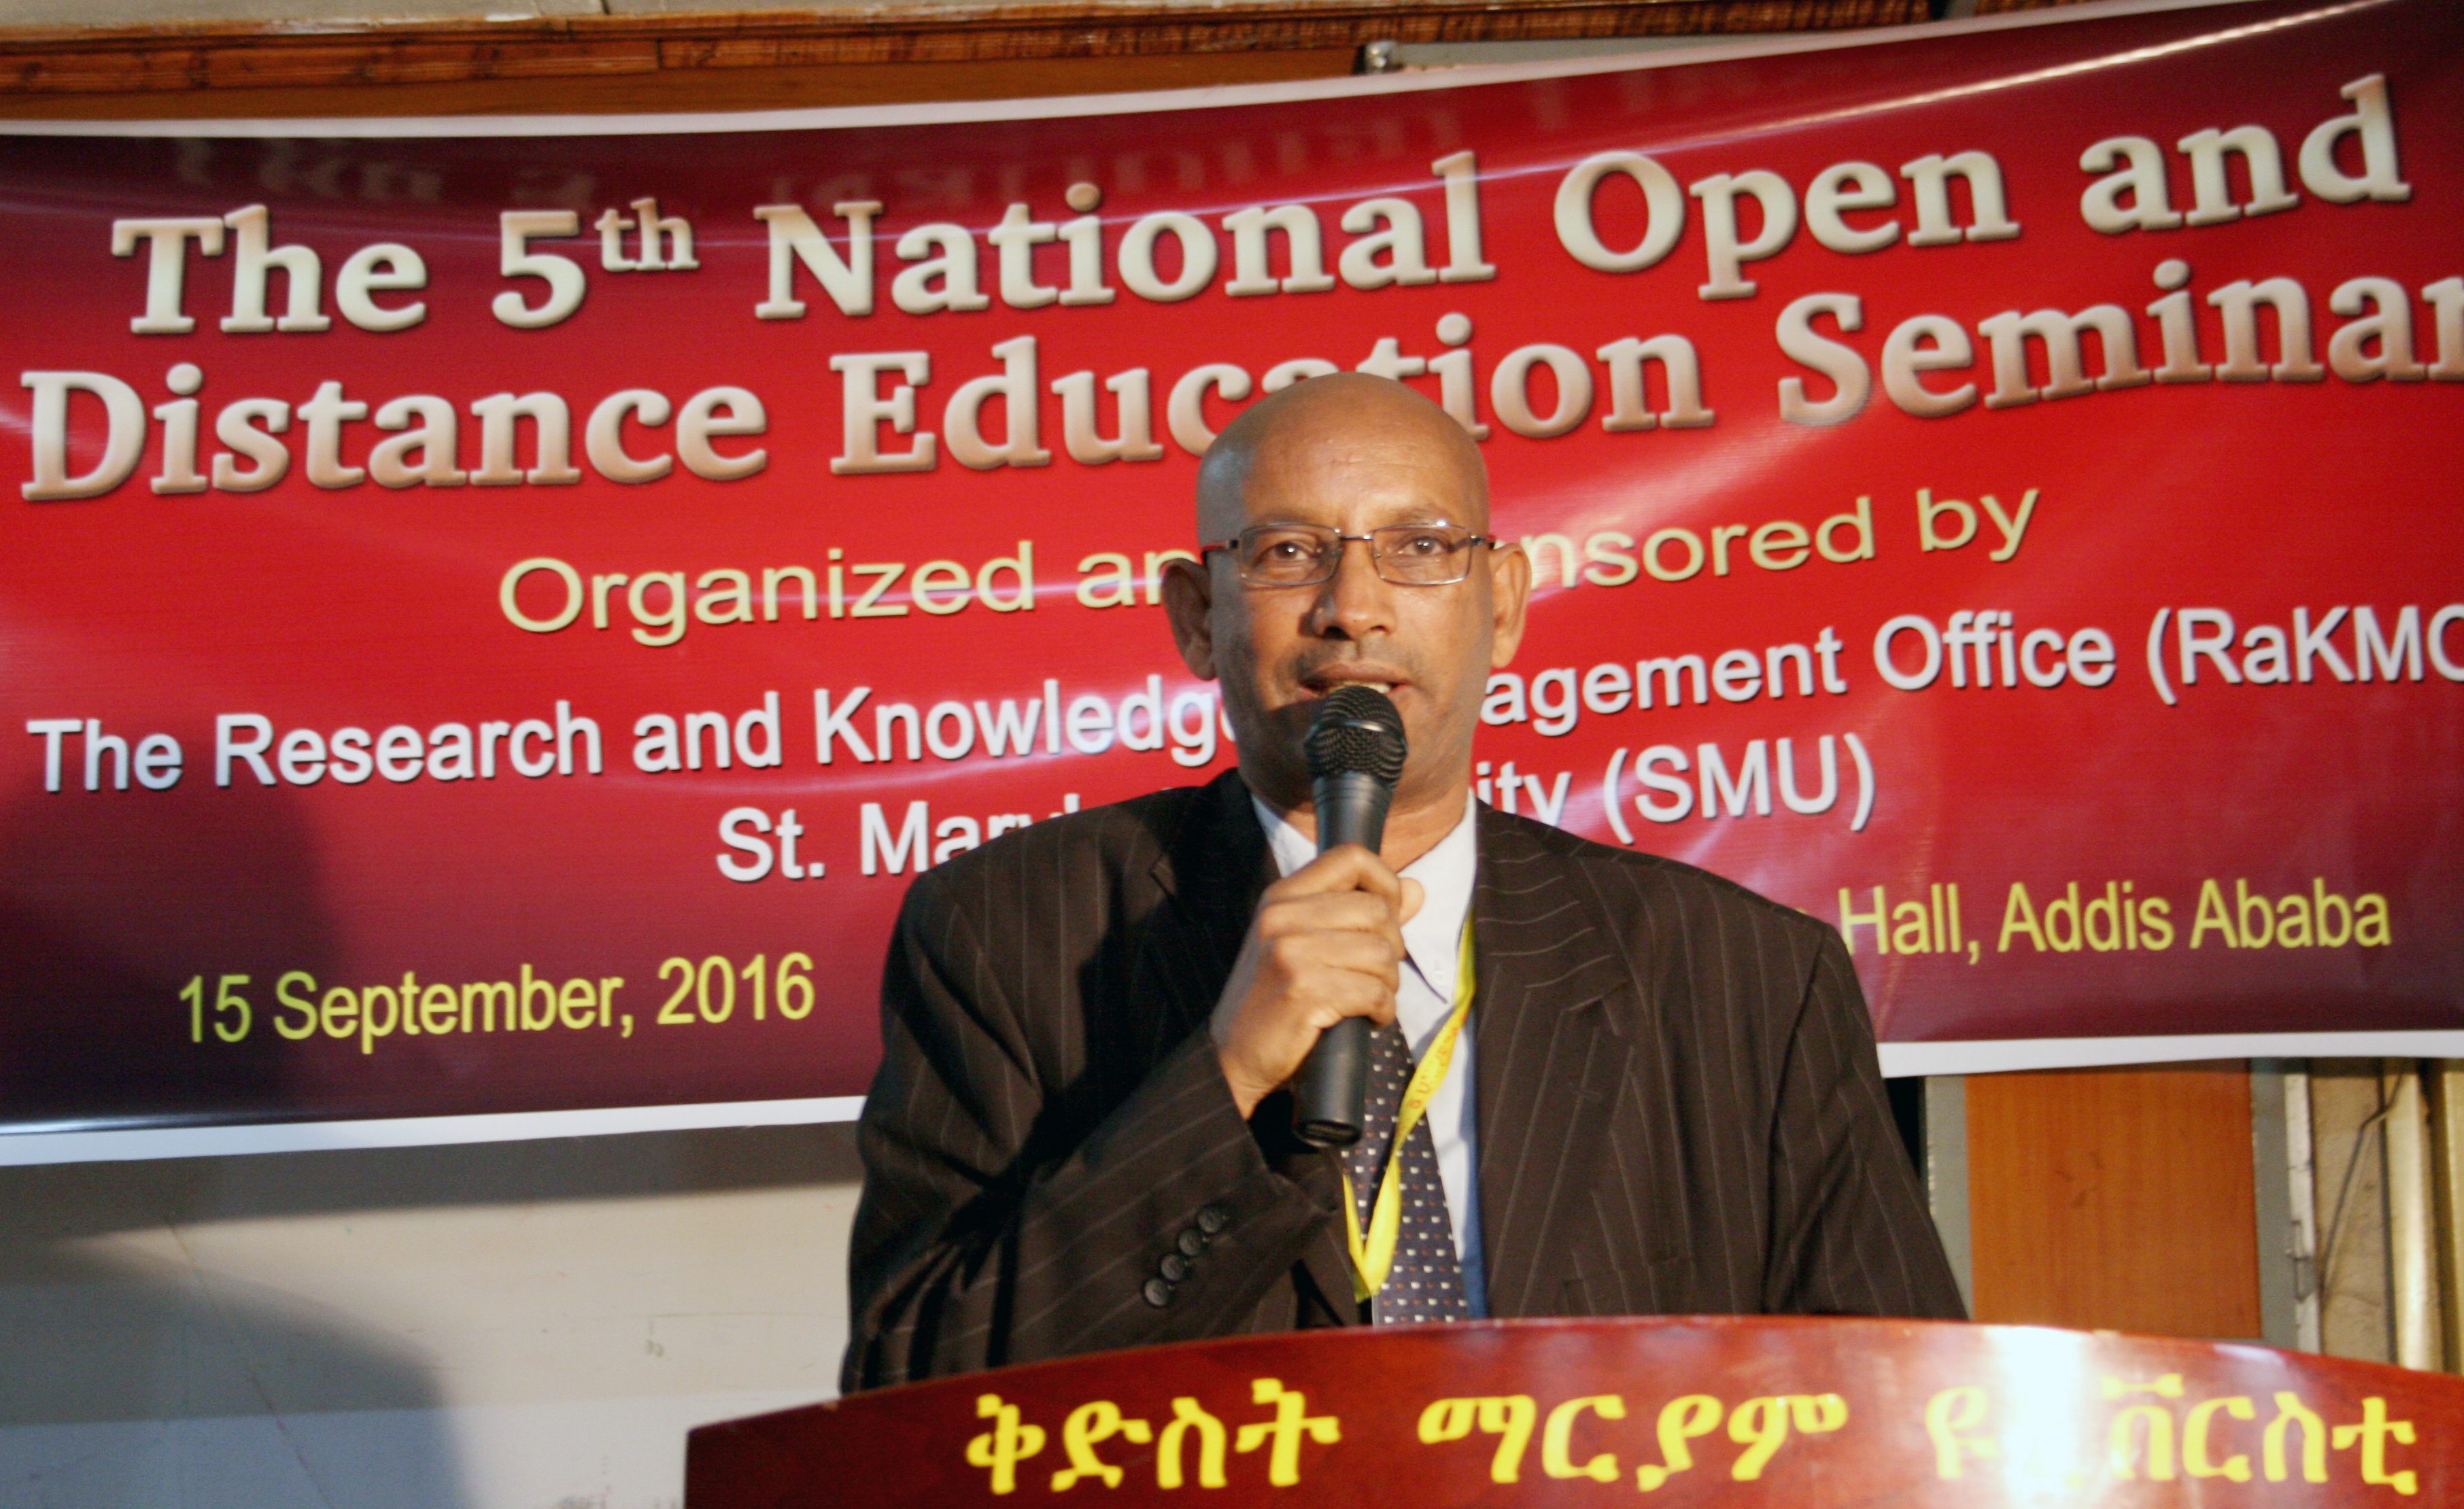 Annual Open & Distance Education Seminar